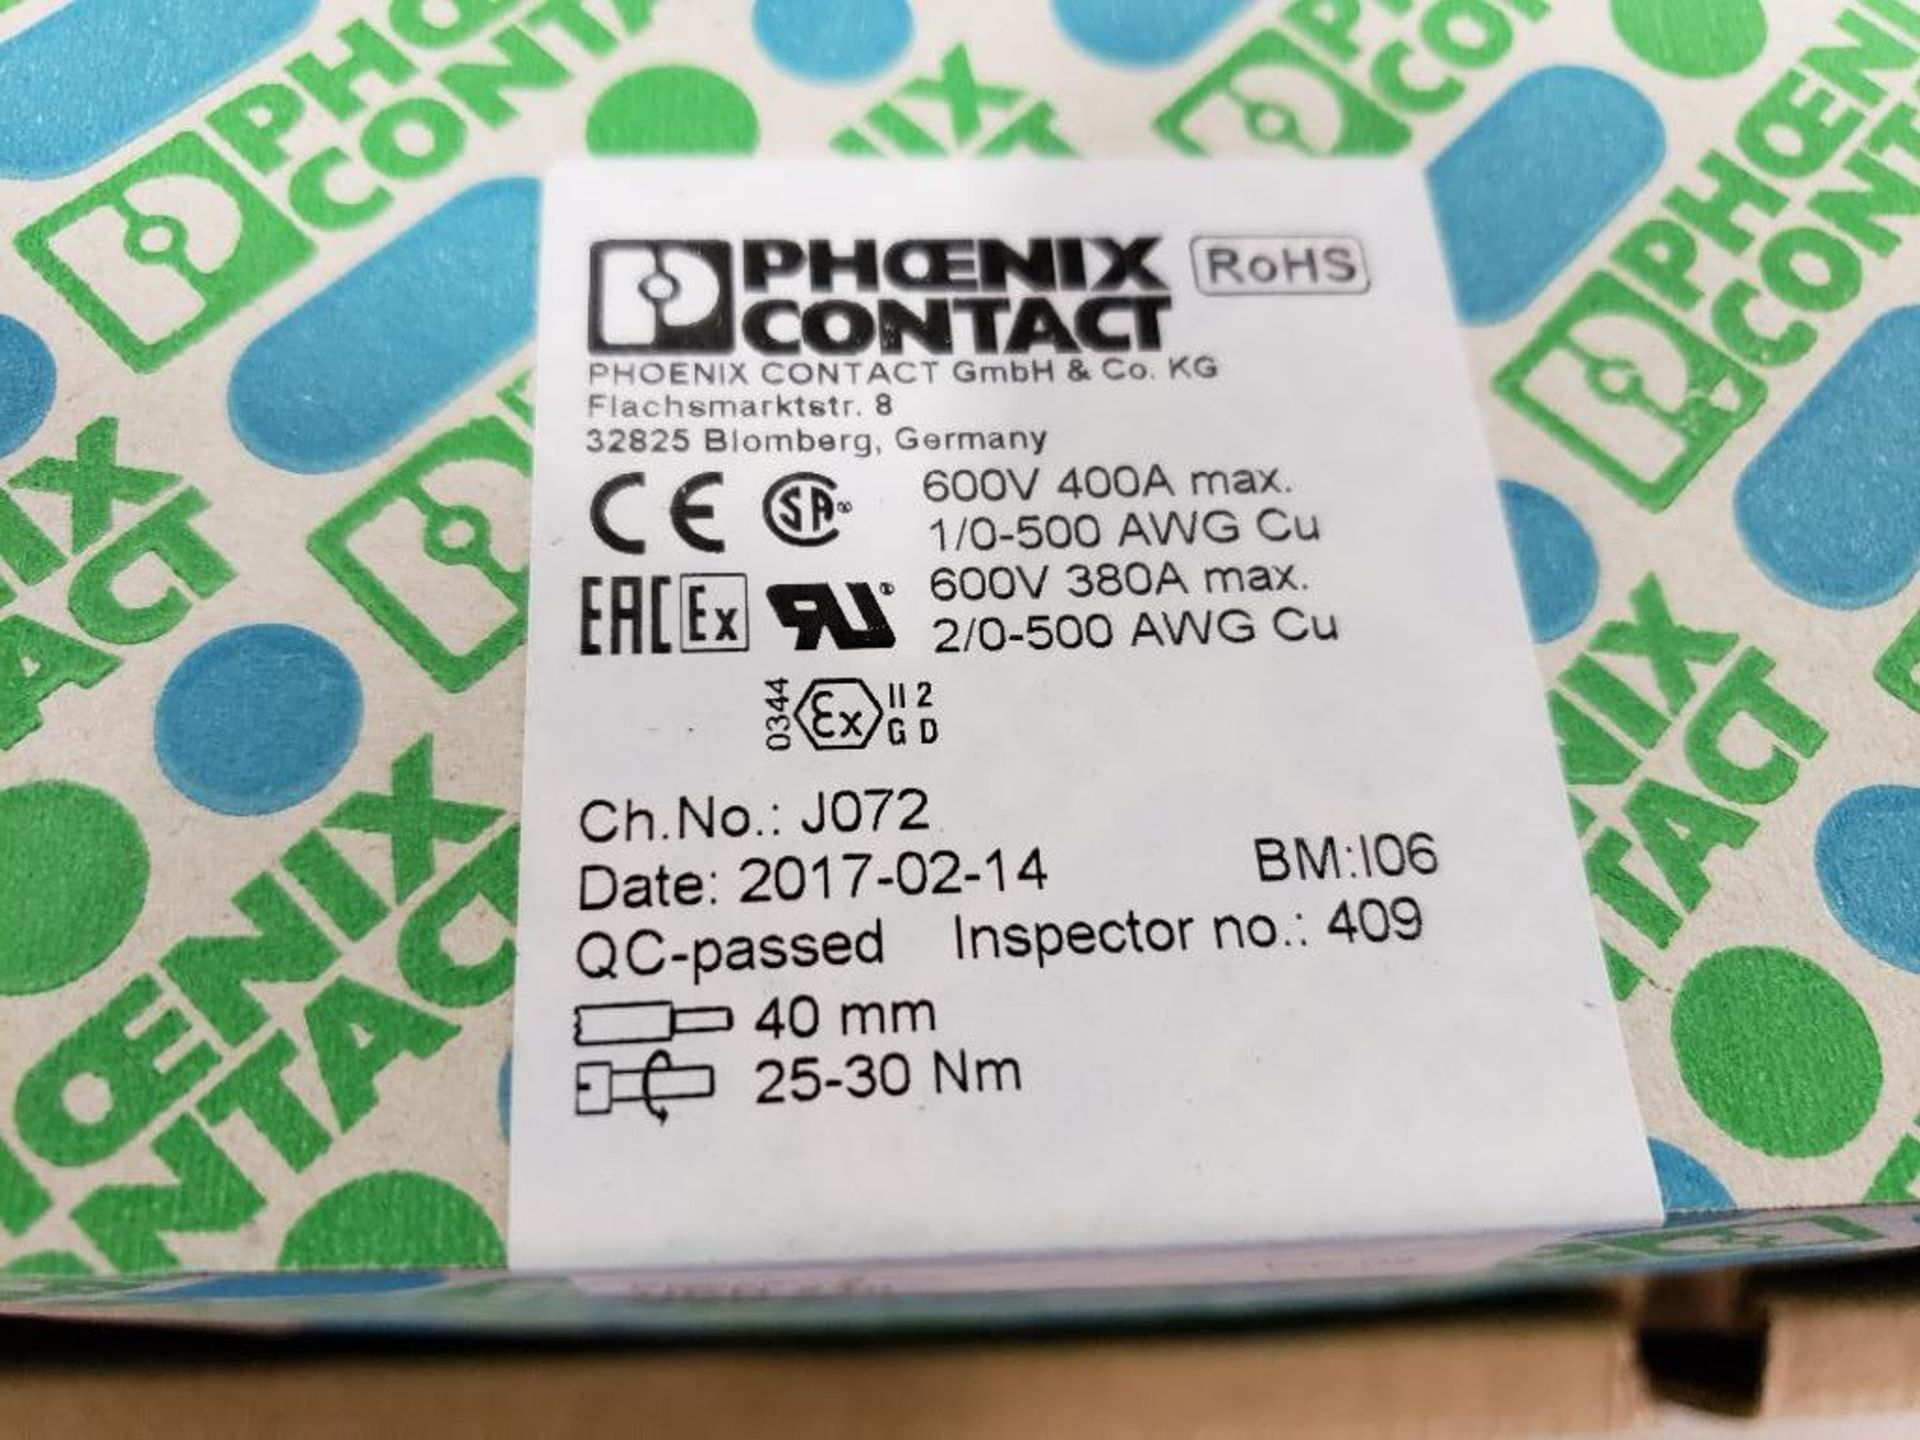 Qty 4 - Boxes Phoenix Contact model 3010217 terminal block. New in box. - Image 2 of 4